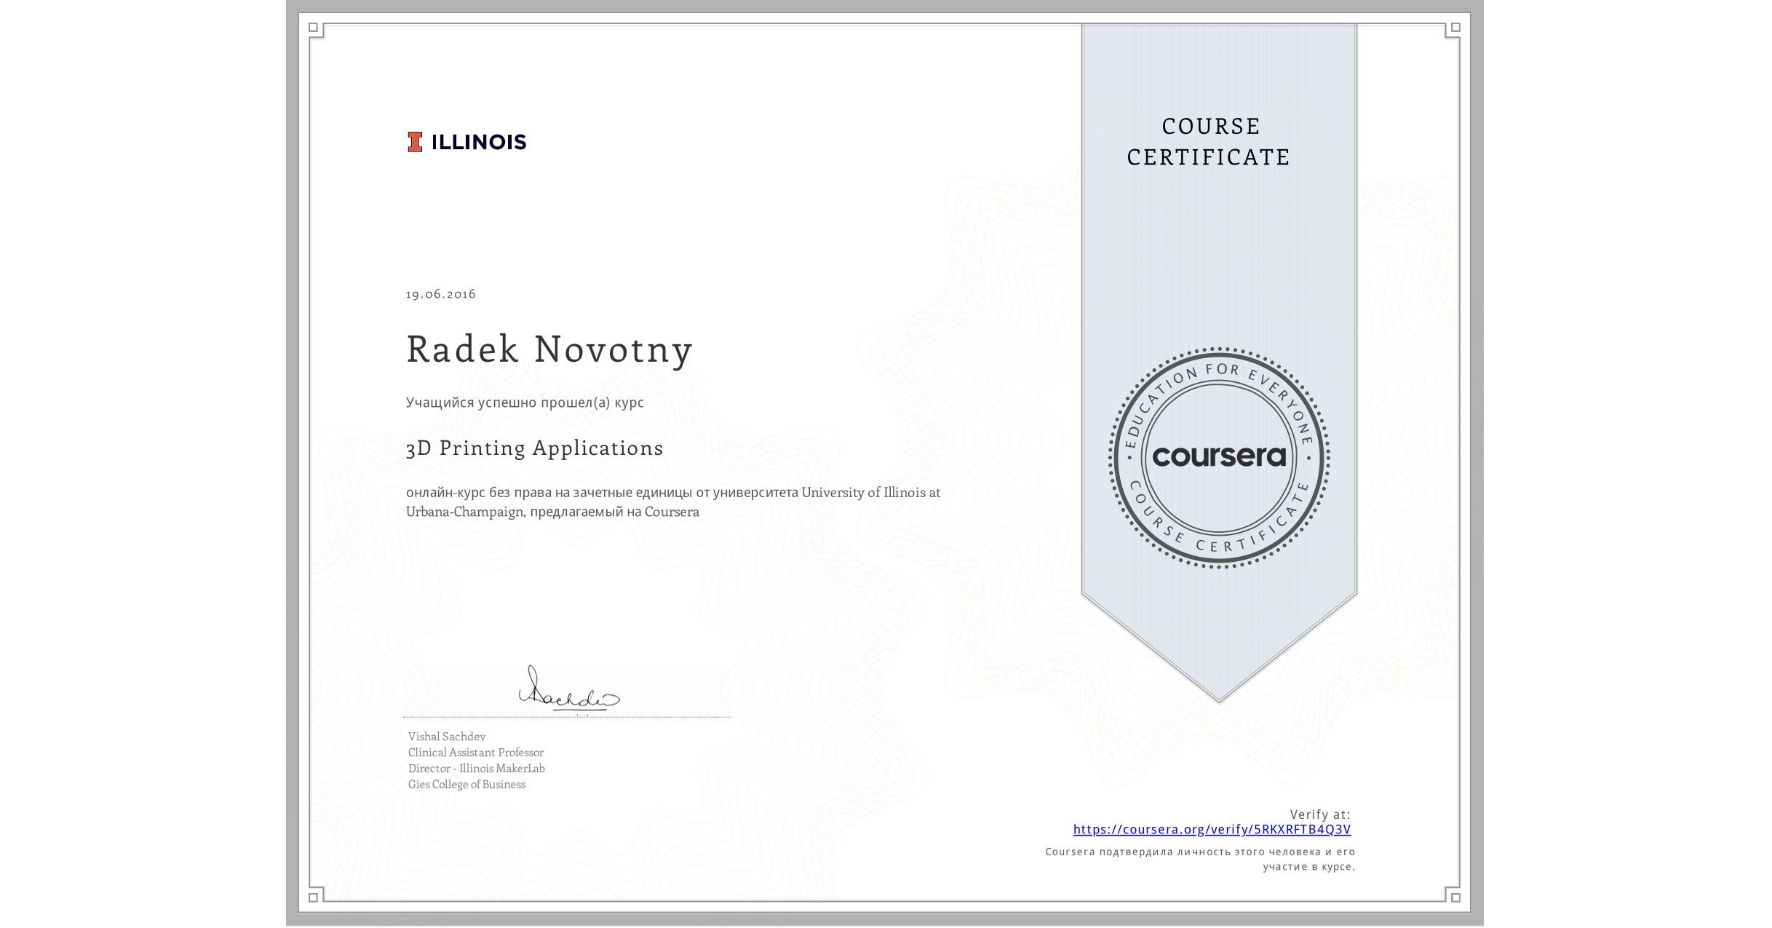 View certificate for Radek Novotny, 3D Printing Applications, an online non-credit course authorized by University of Illinois at Urbana-Champaign and offered through Coursera